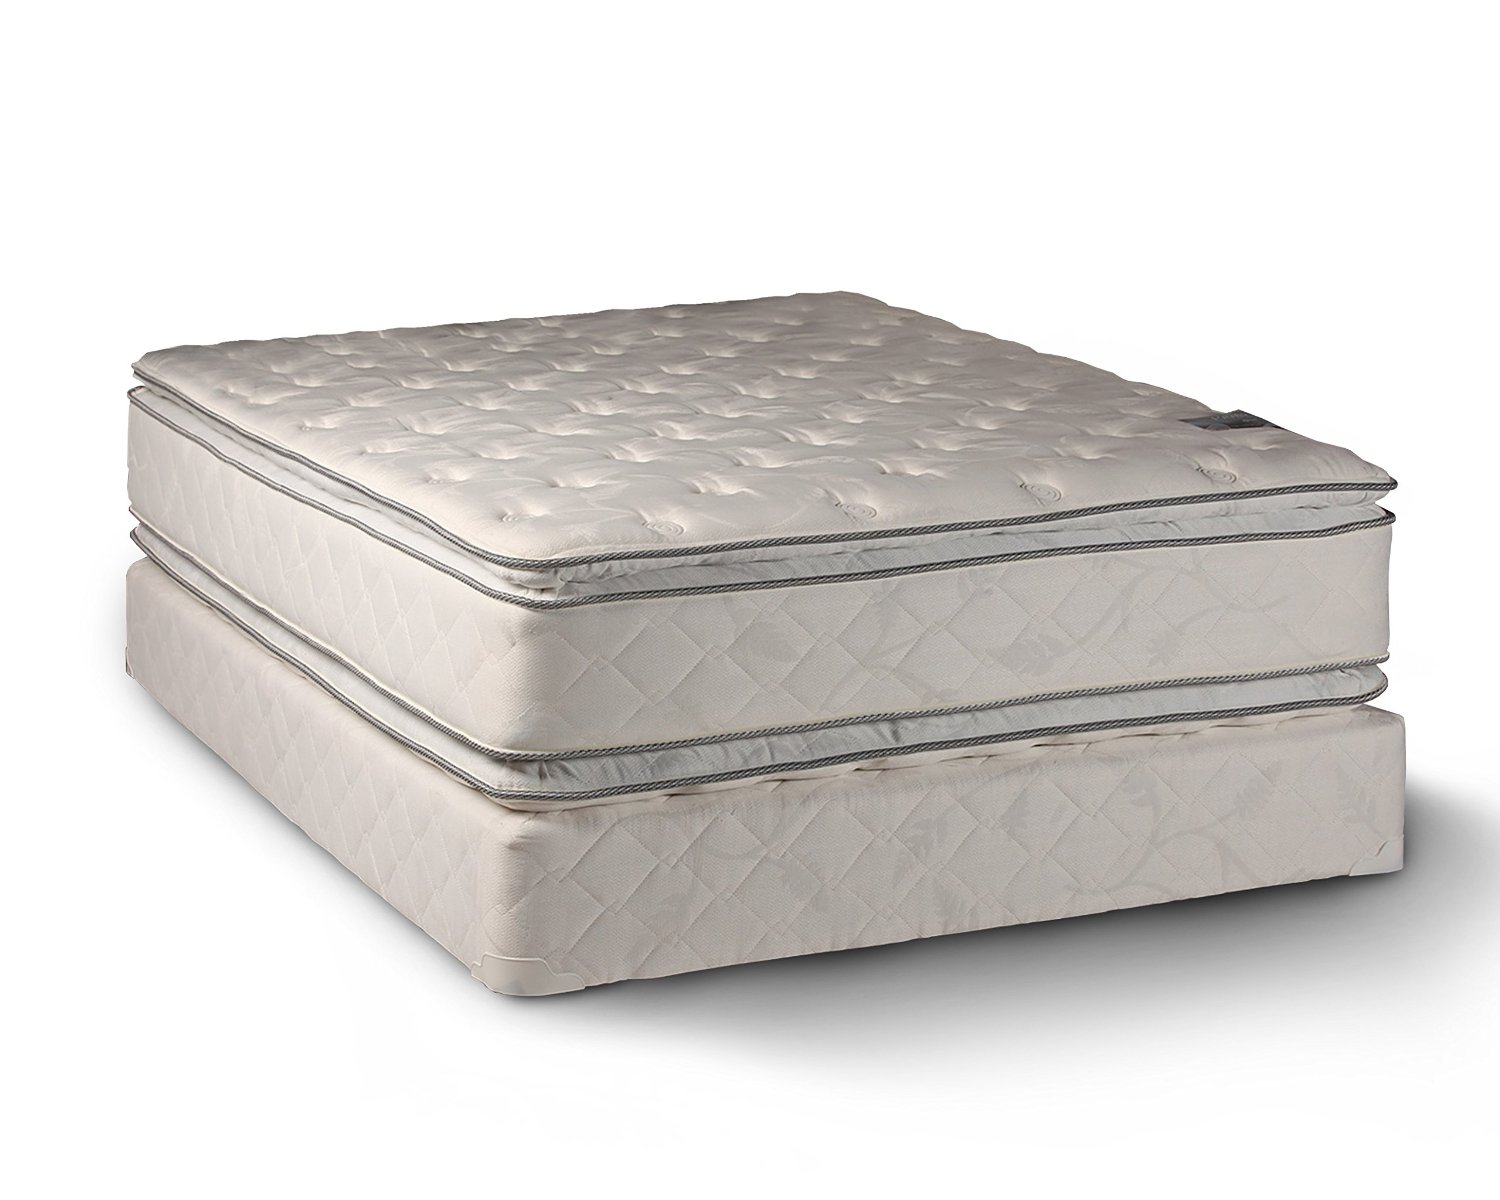 cheap pillowtop queen mattress find pillowtop queen mattress deals